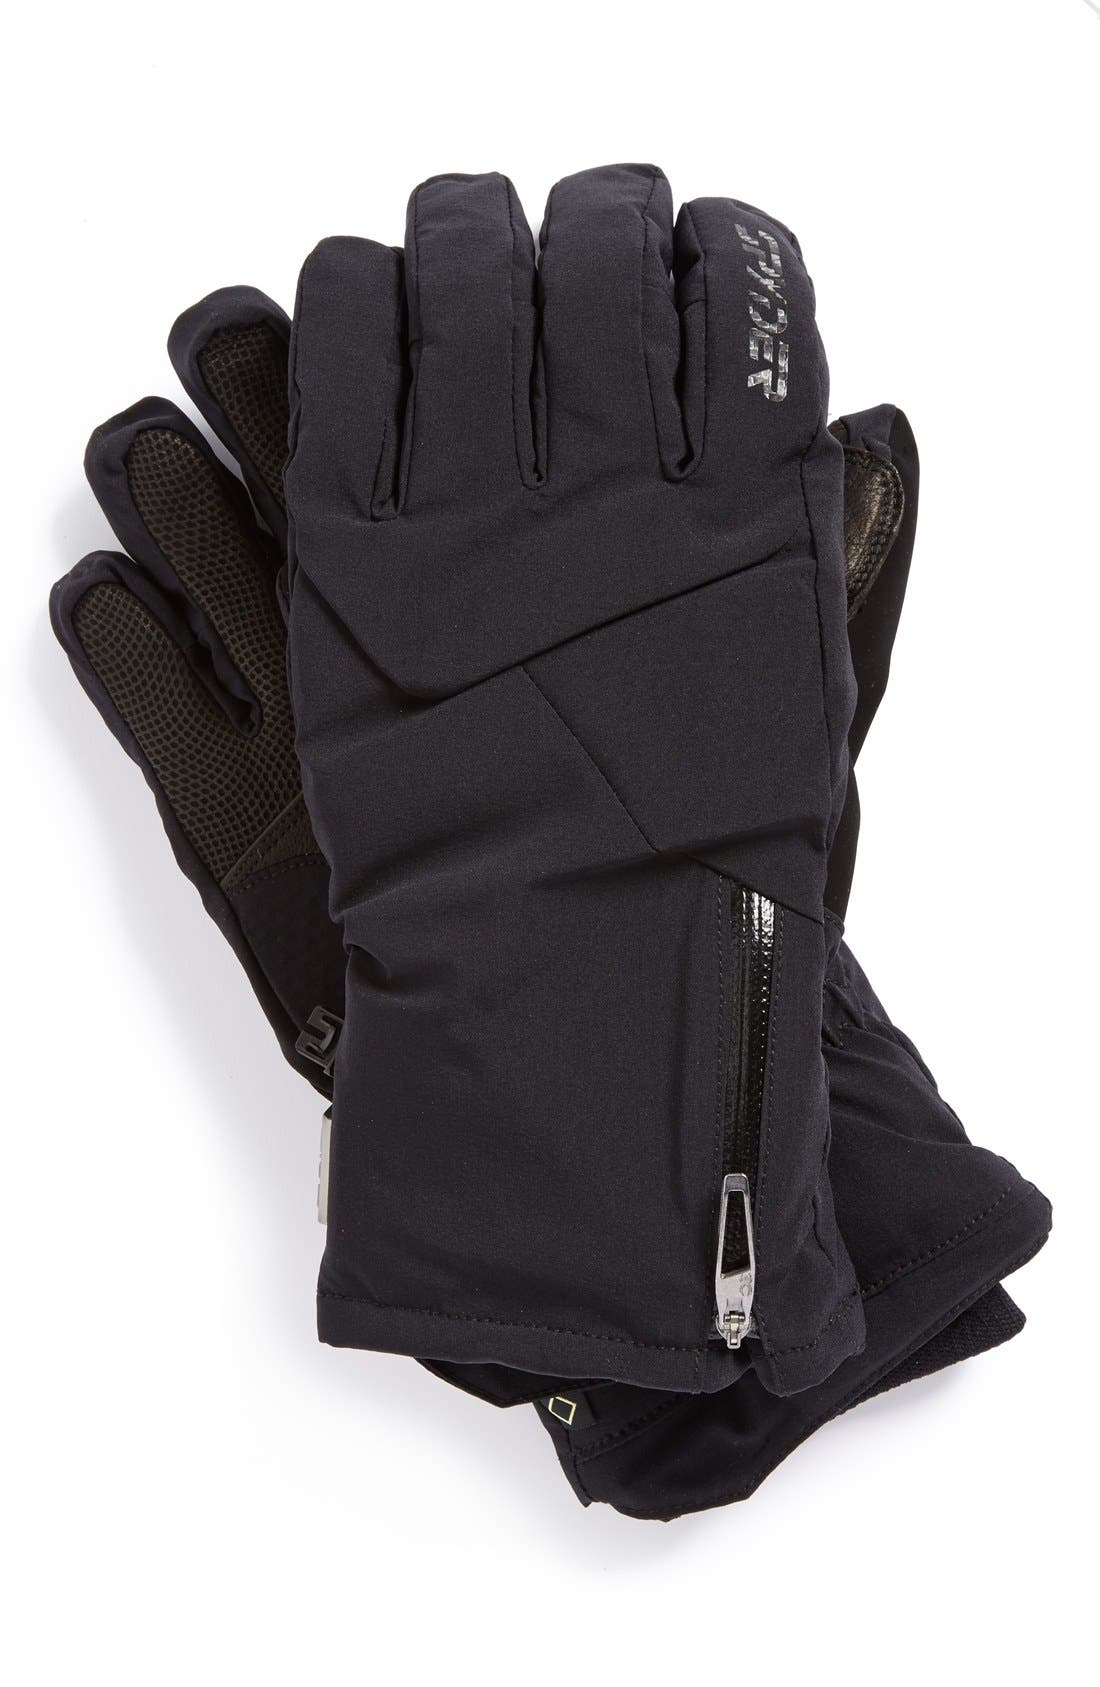 'Sestriere' Gore-Tex<sup>®</sup> Waterproof PrimaLoft<sup>®</sup> Insulated Ski Gloves,                             Main thumbnail 1, color,                             001